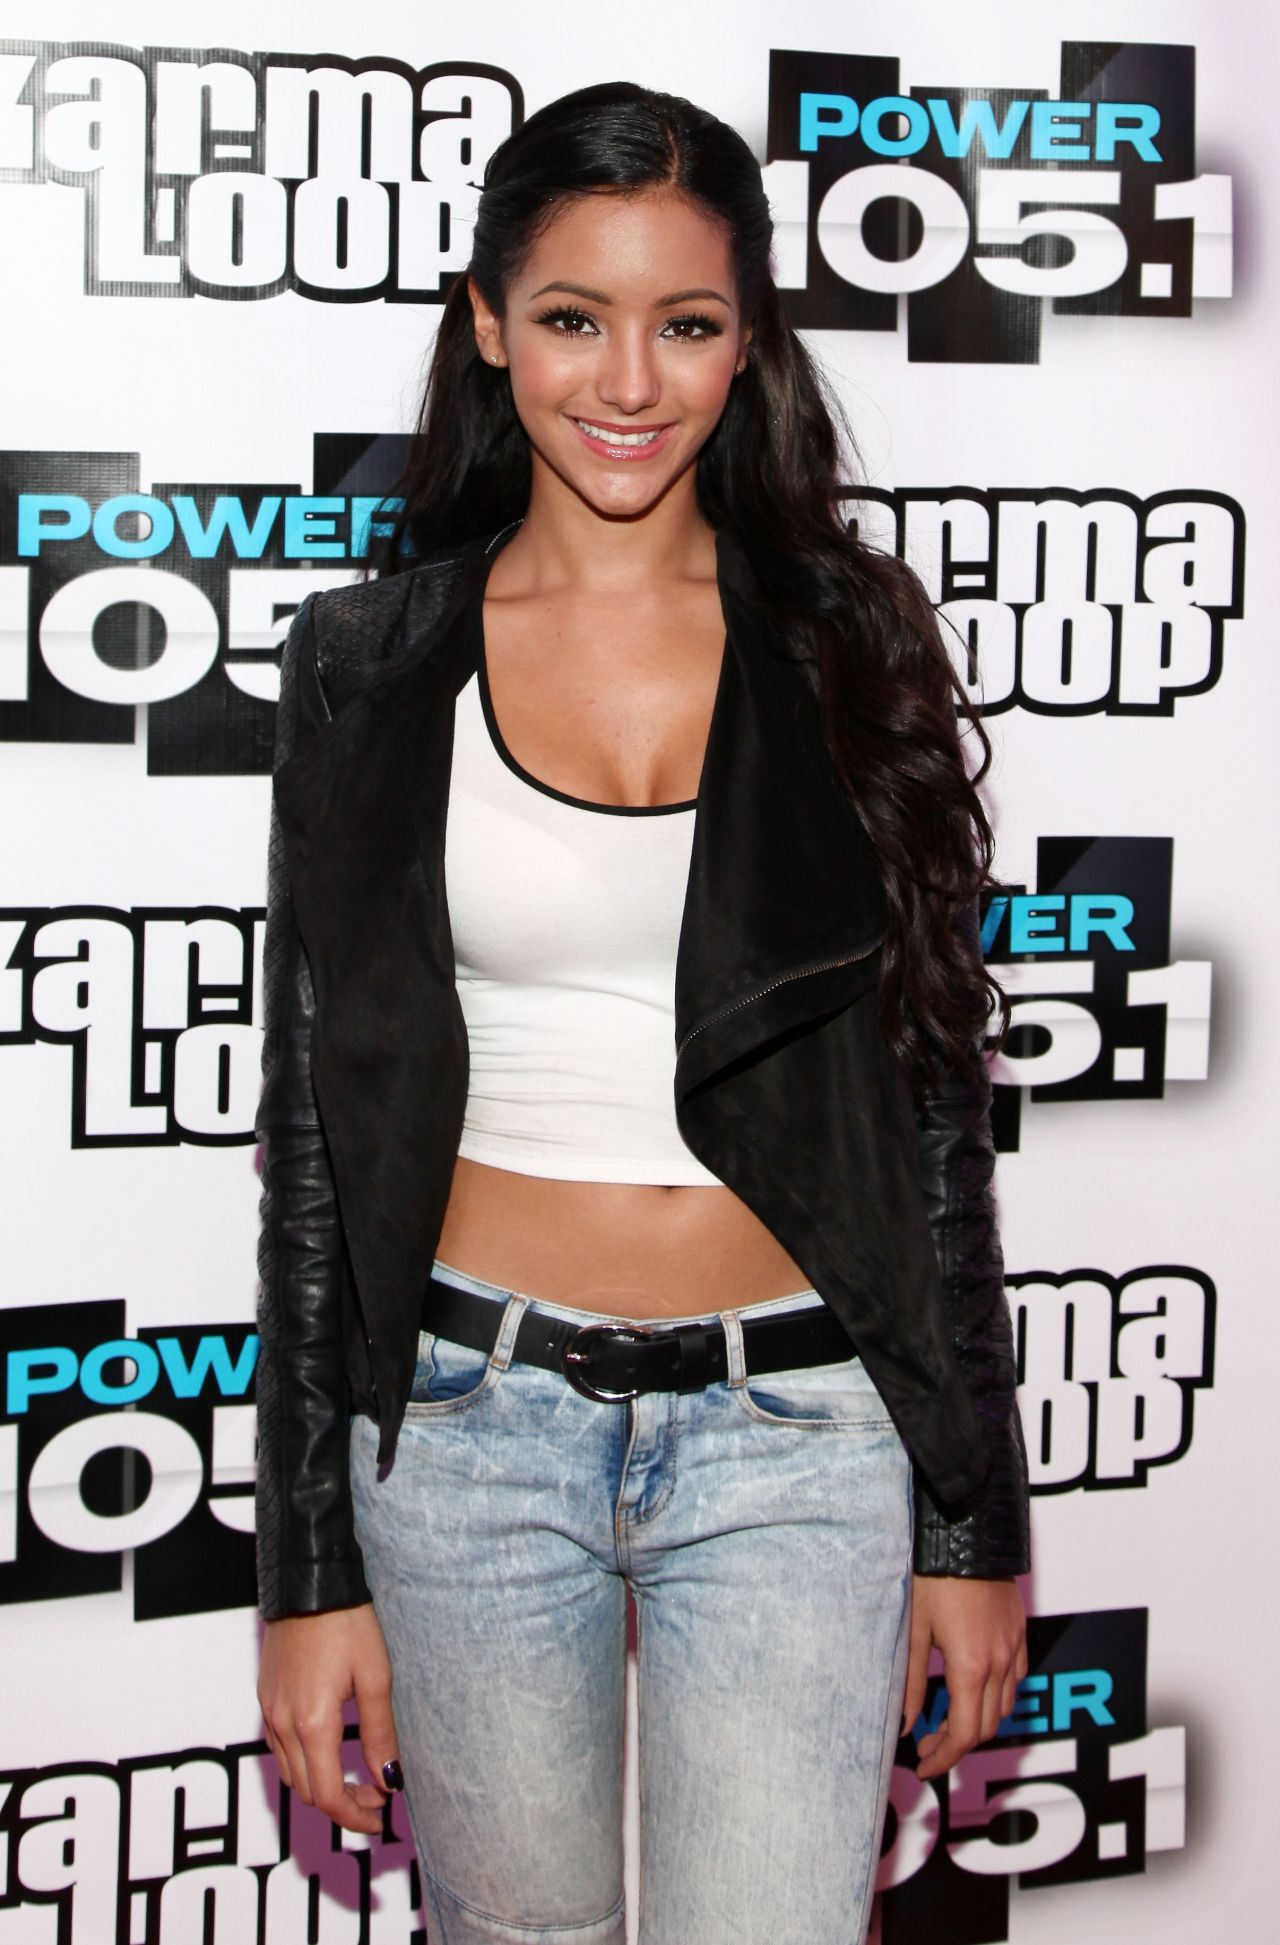 melanie-iglesias-at-power-105.1-s-powerh